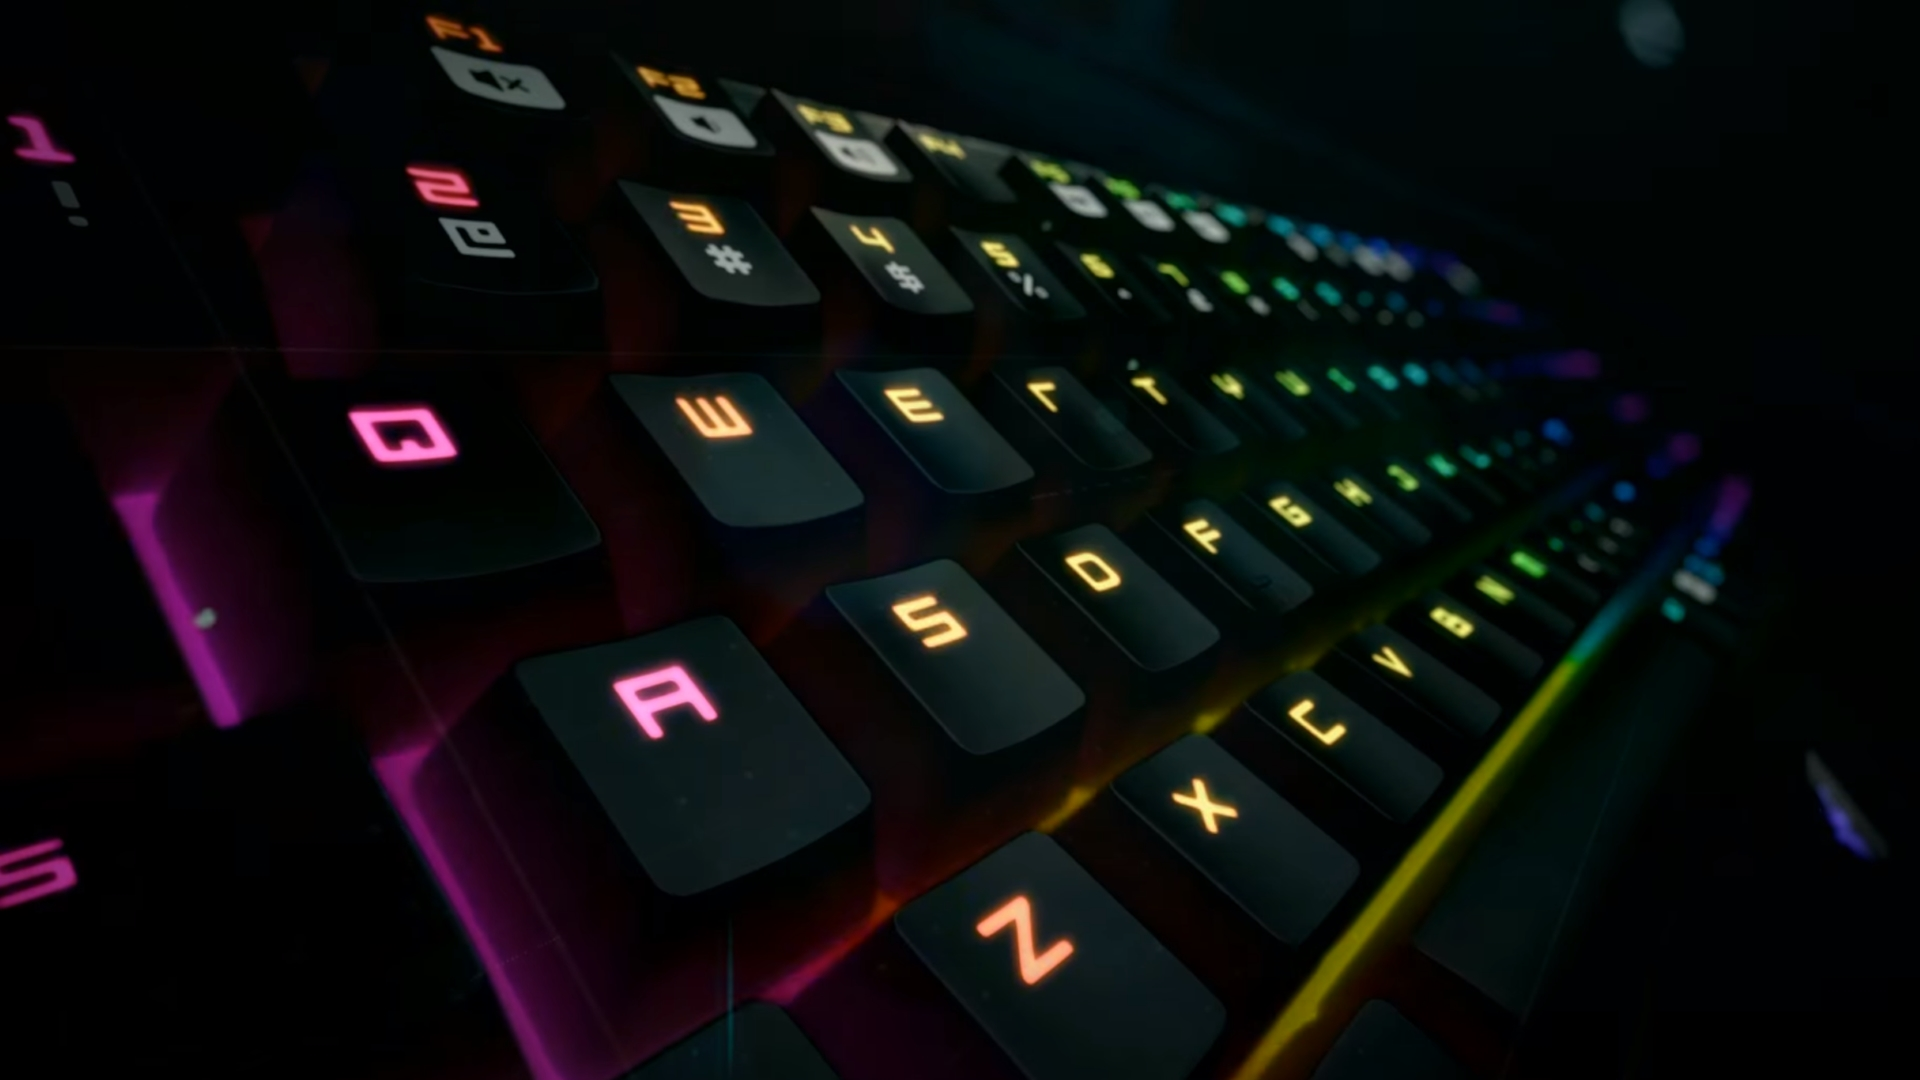 Best Gaming Keyboard 2018 Pcgamesn Corsair Mechanical K65 Rgb Red Switch